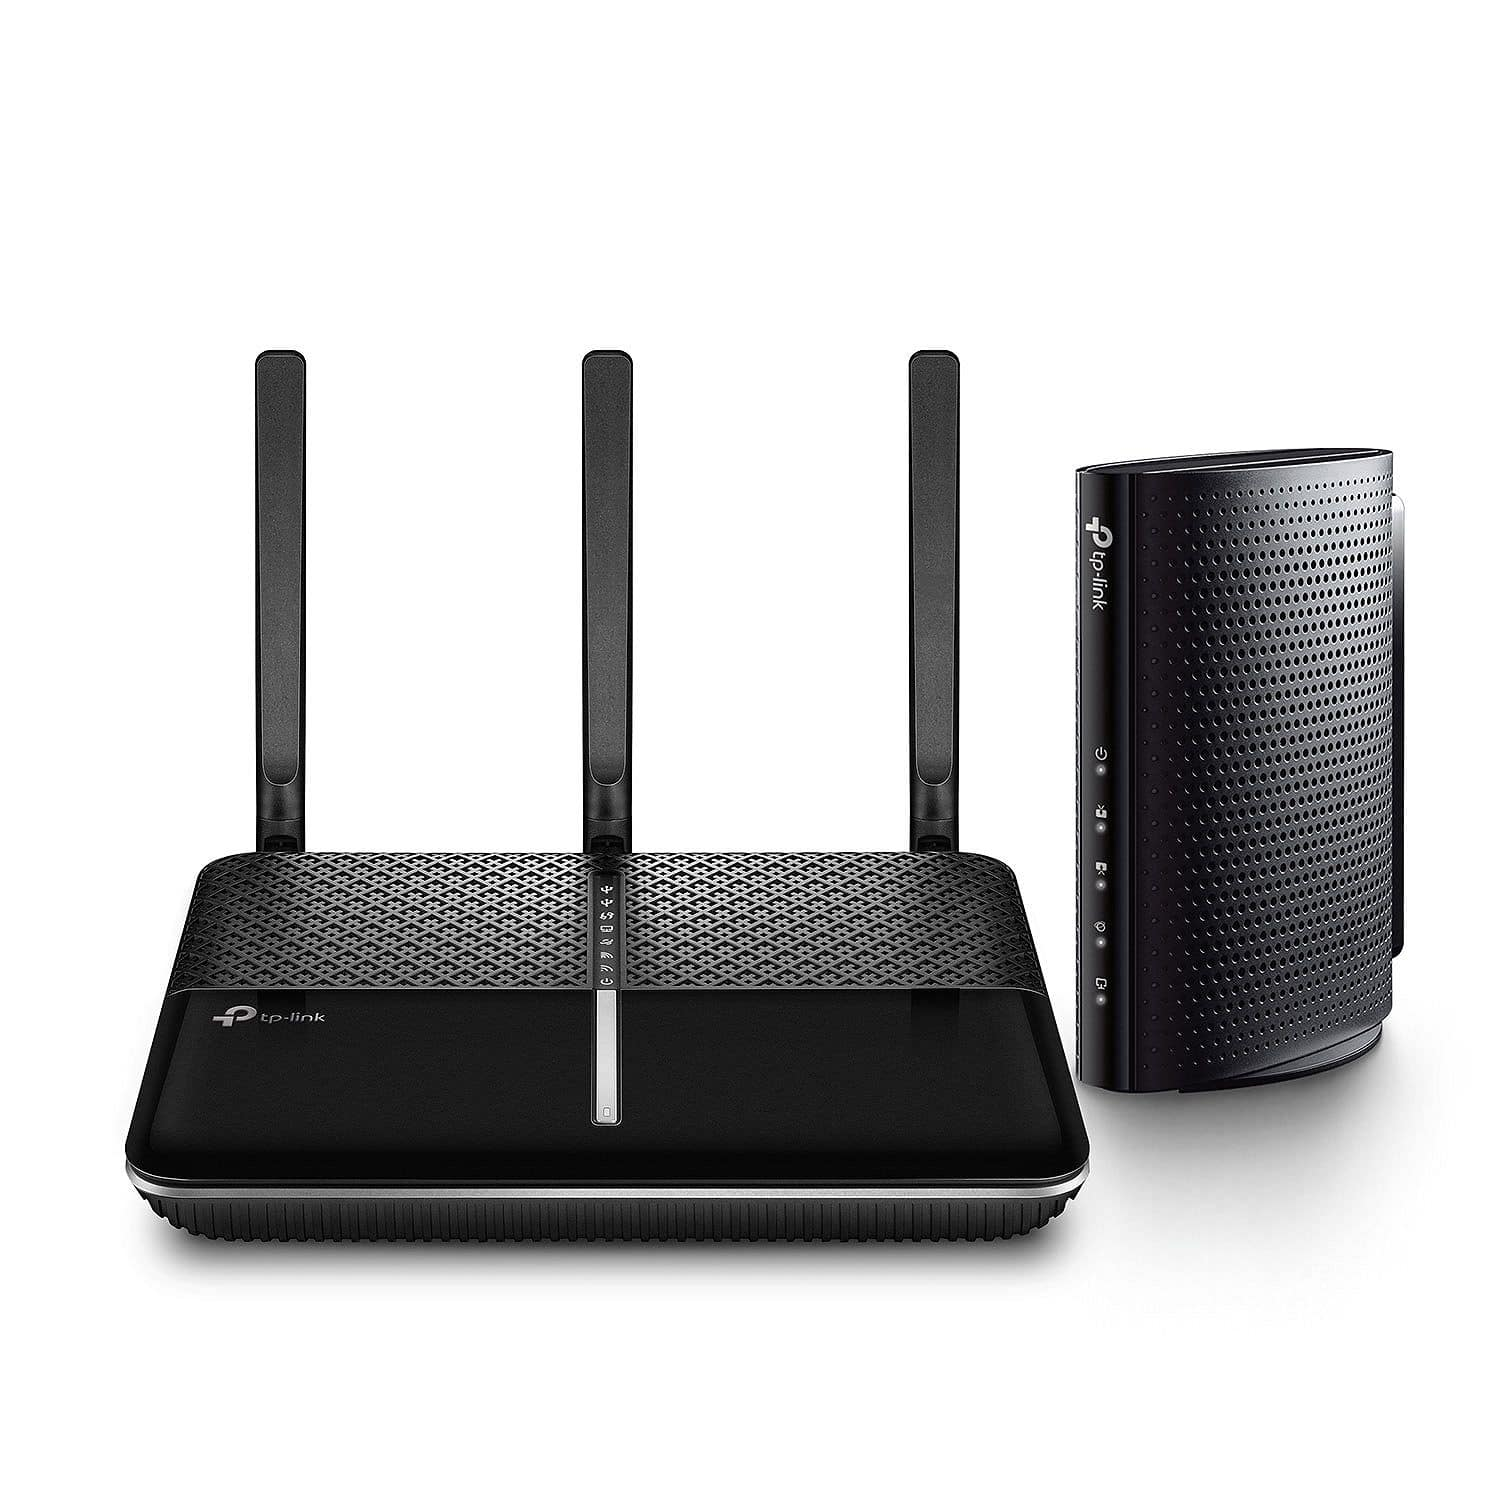 TP-Link AC2300 MU-MIMO Wireless Router + DOCSIS 3.0 (8x4) Cable Modem Only $159.86 Free SH